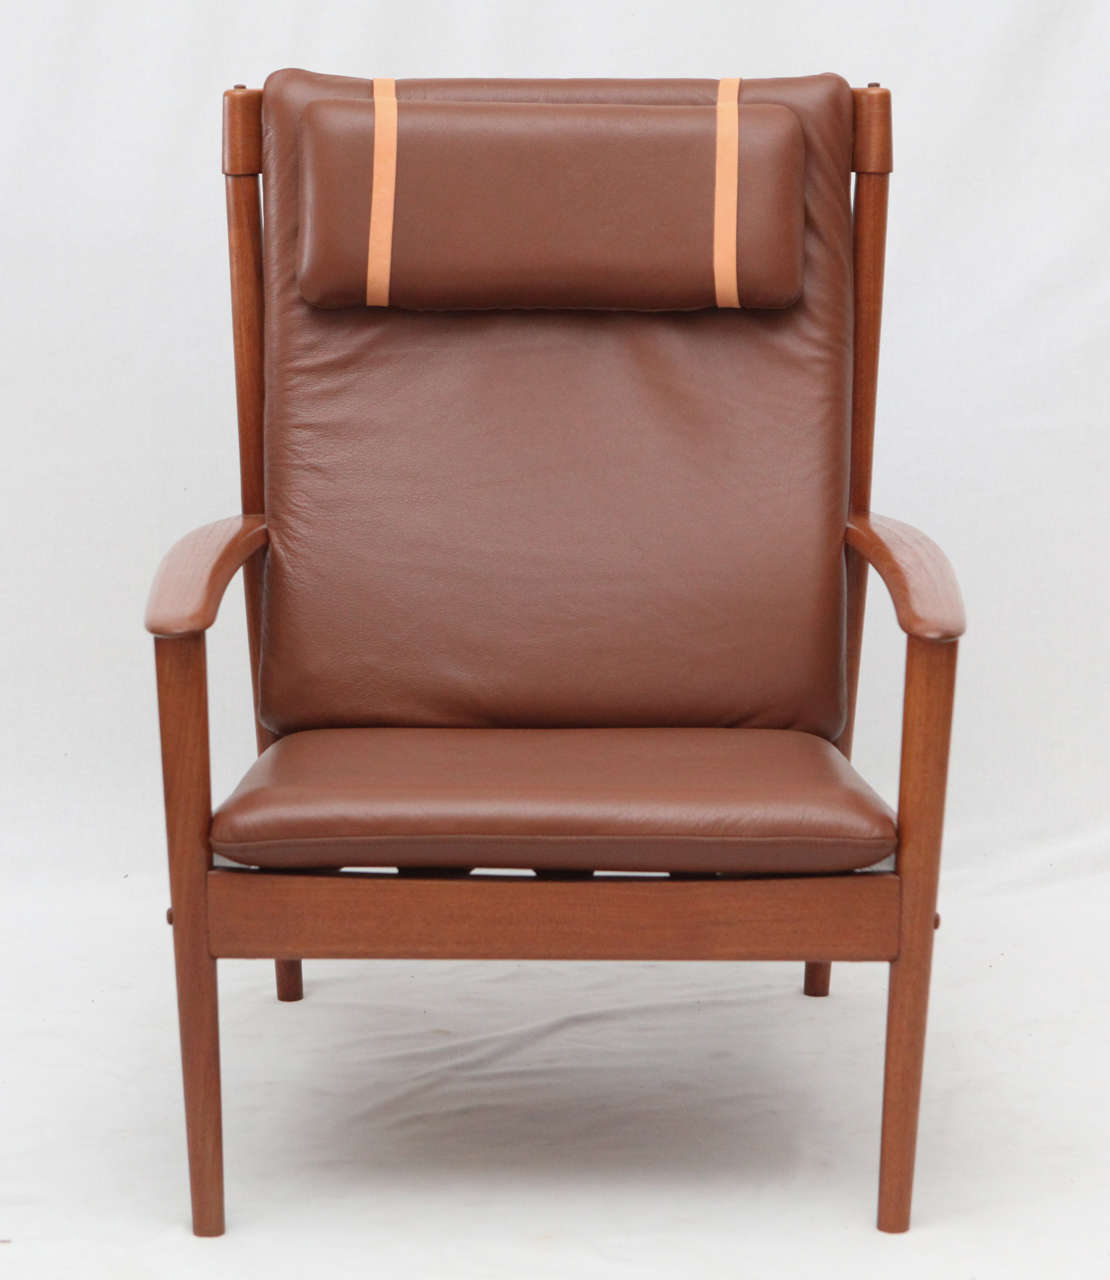 High Back Lounge Chair Grete Jalk High Back Lounge Chair At 1stdibs